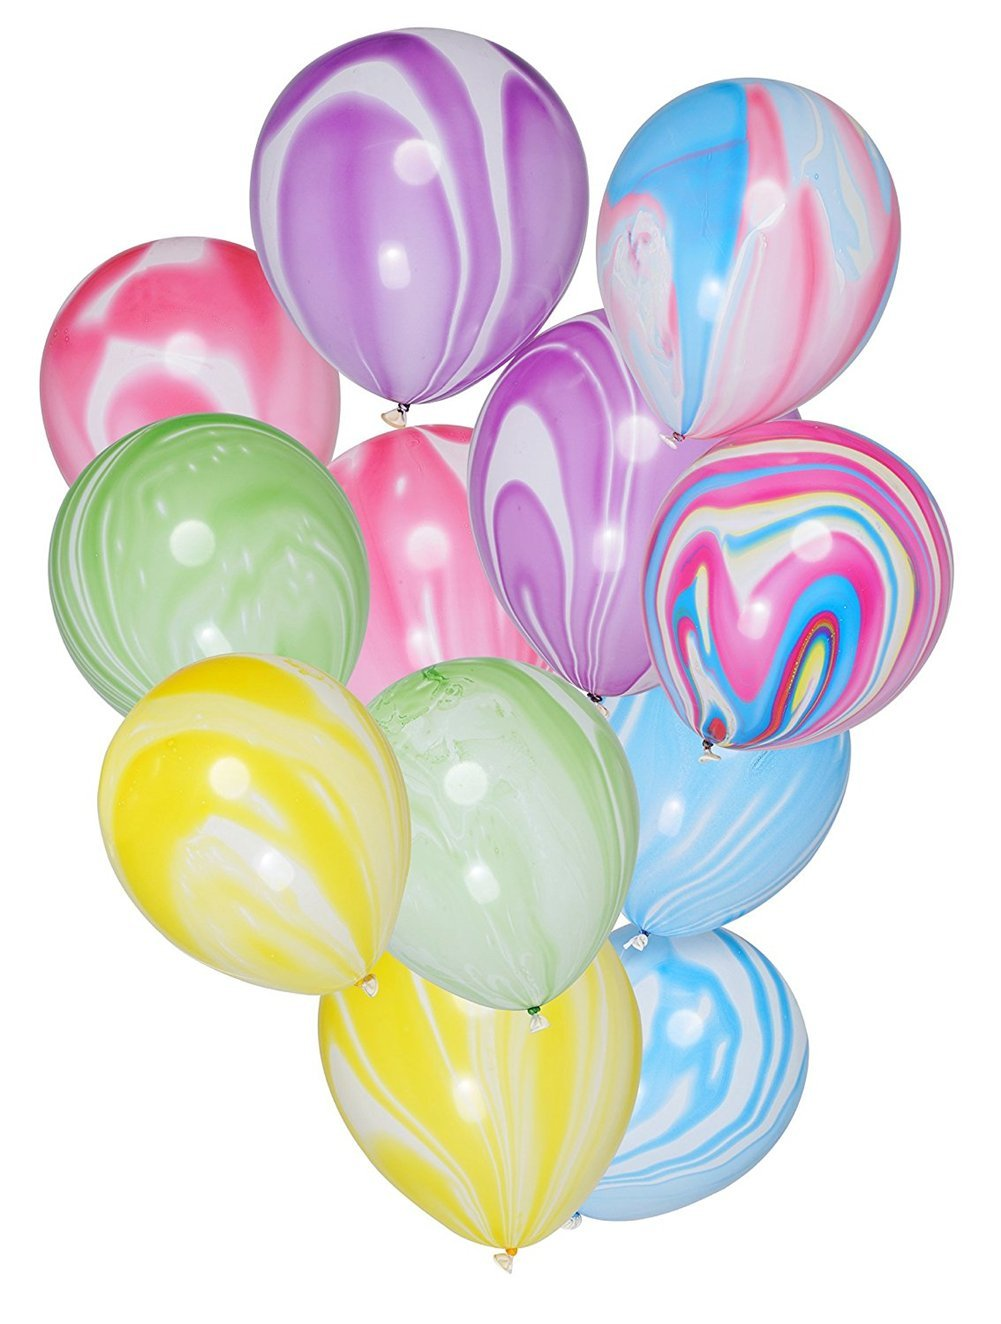 Wedding Decoration 12 Inch Cloud of Color Pack of 18 Marble Colorful Balloons for Unicorn Party Supplies Mi-Trade